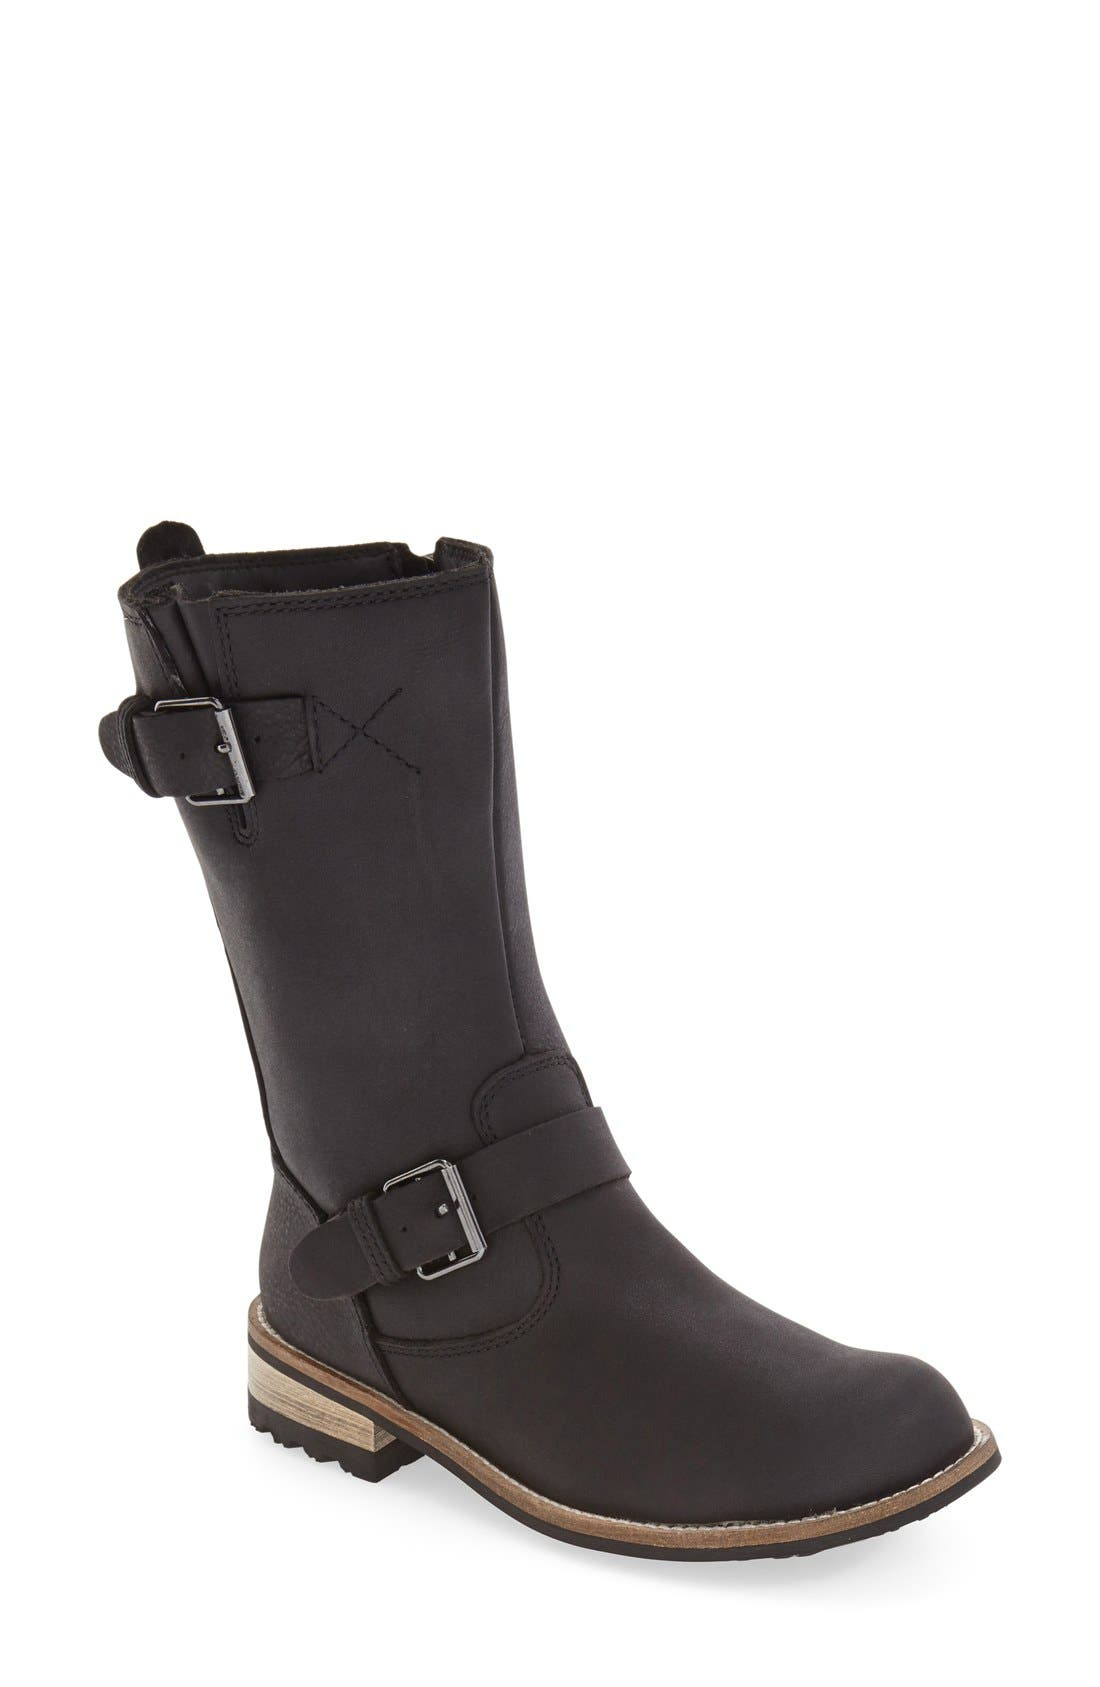 'Alcona' Waterproof Boot,                         Main,                         color, BLACK LEATHER